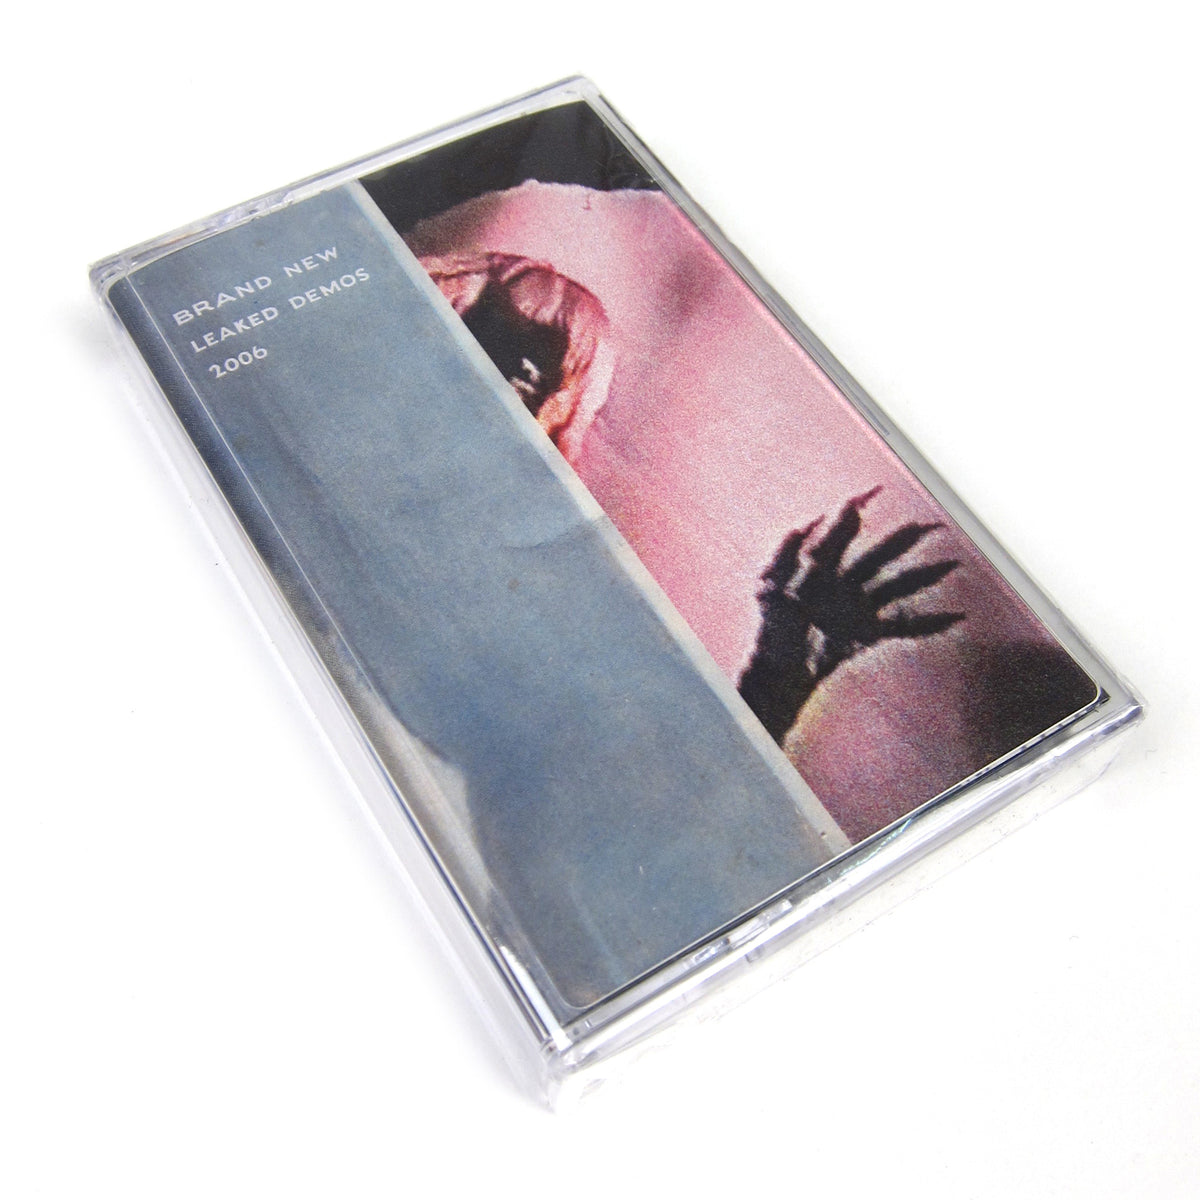 Brand New: Leaked Demos 2006 Cassette